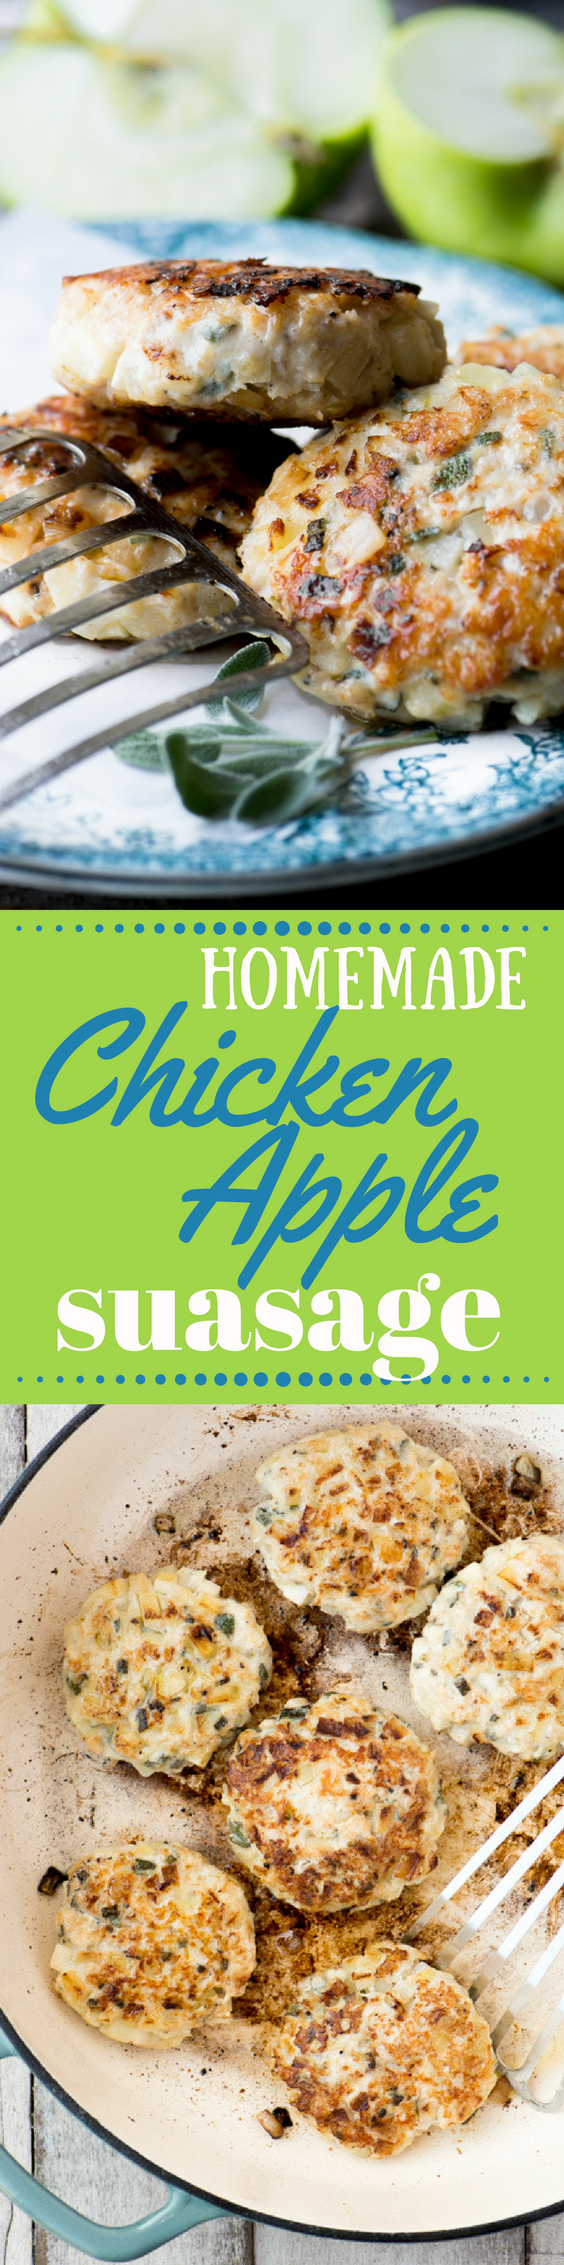 My Homemade Chicken Apple Sausage Recipe Is An Easy Way To Make Your Own  Fabulously Fresh